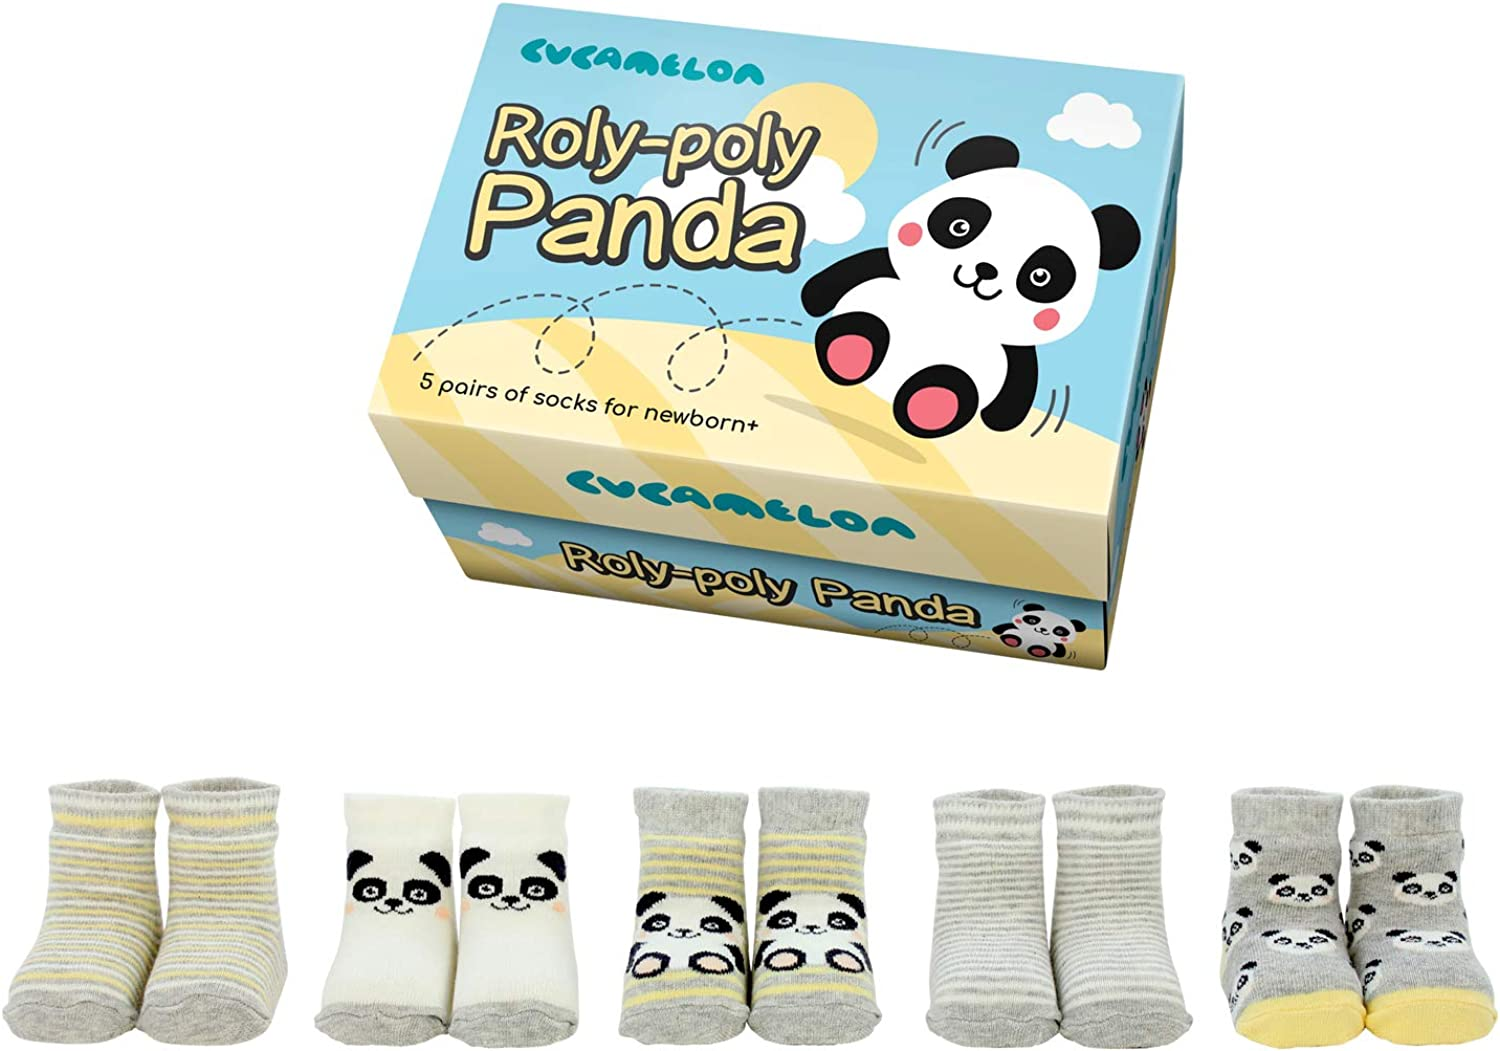 Cucamelon Roly-Poly Panda 5 Pairs of Socks Newborn + Giftboxed